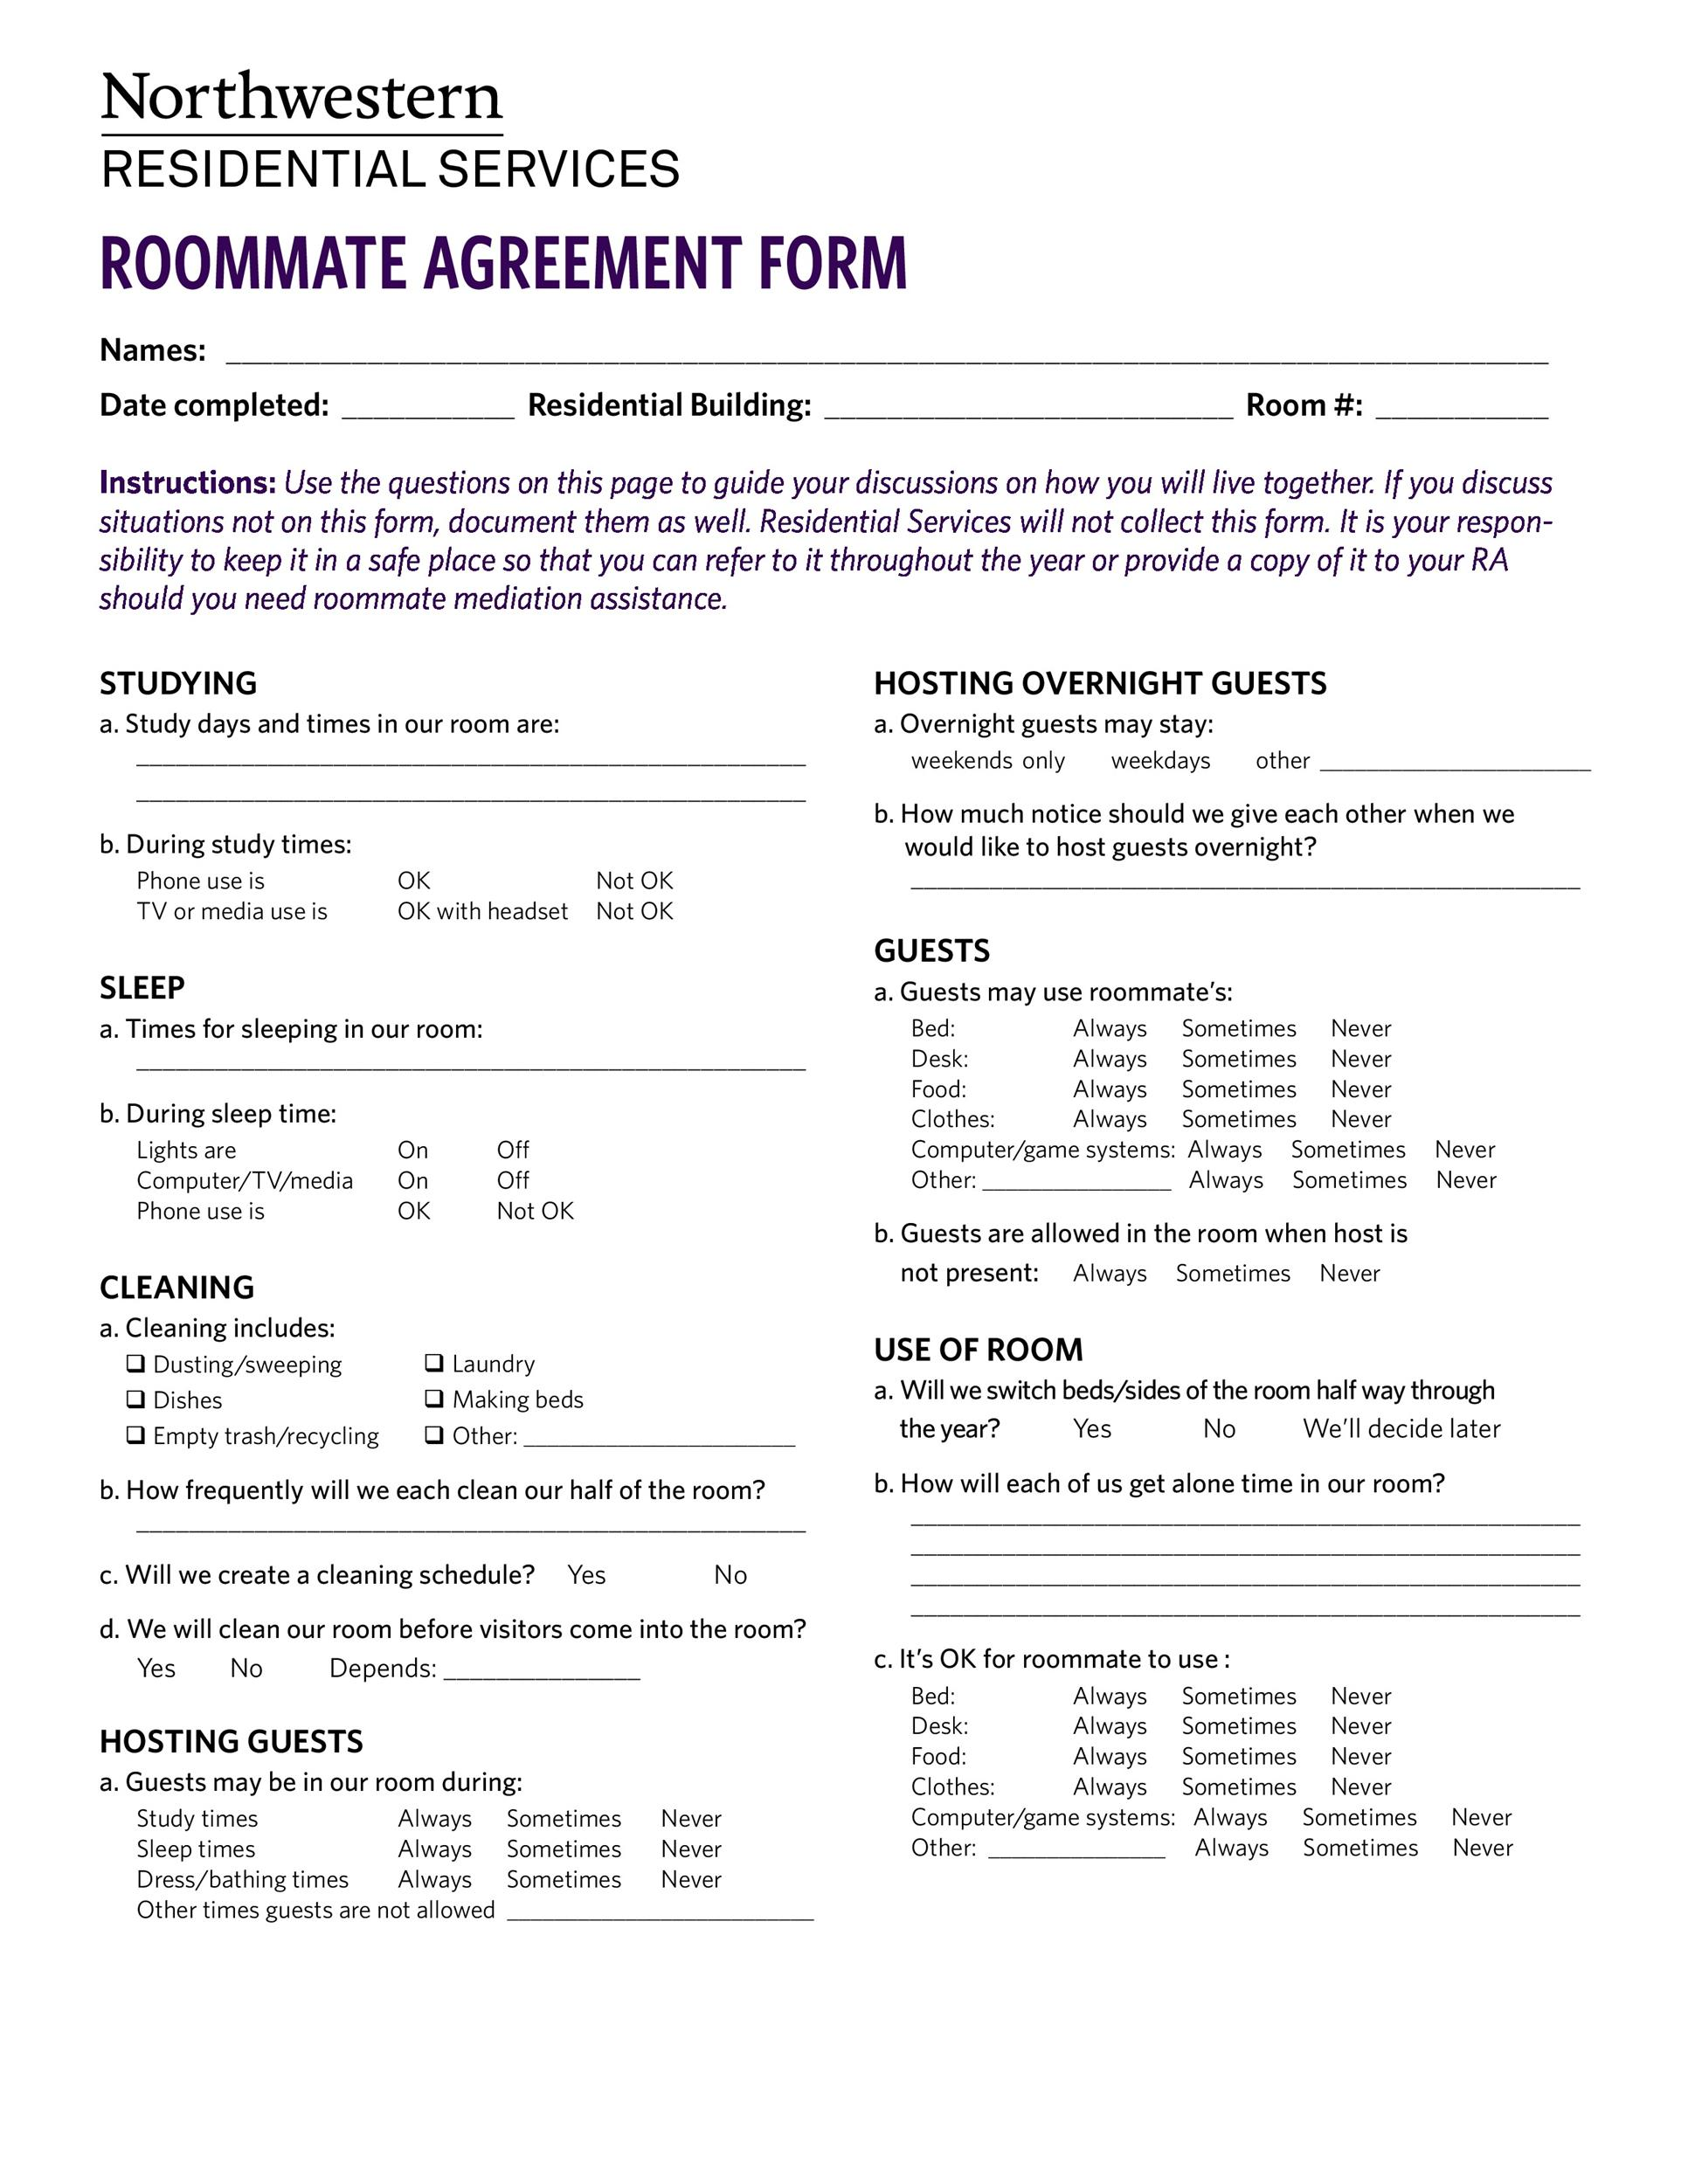 40 Free Roommate Agreement Templates Amp Forms Word Pdf